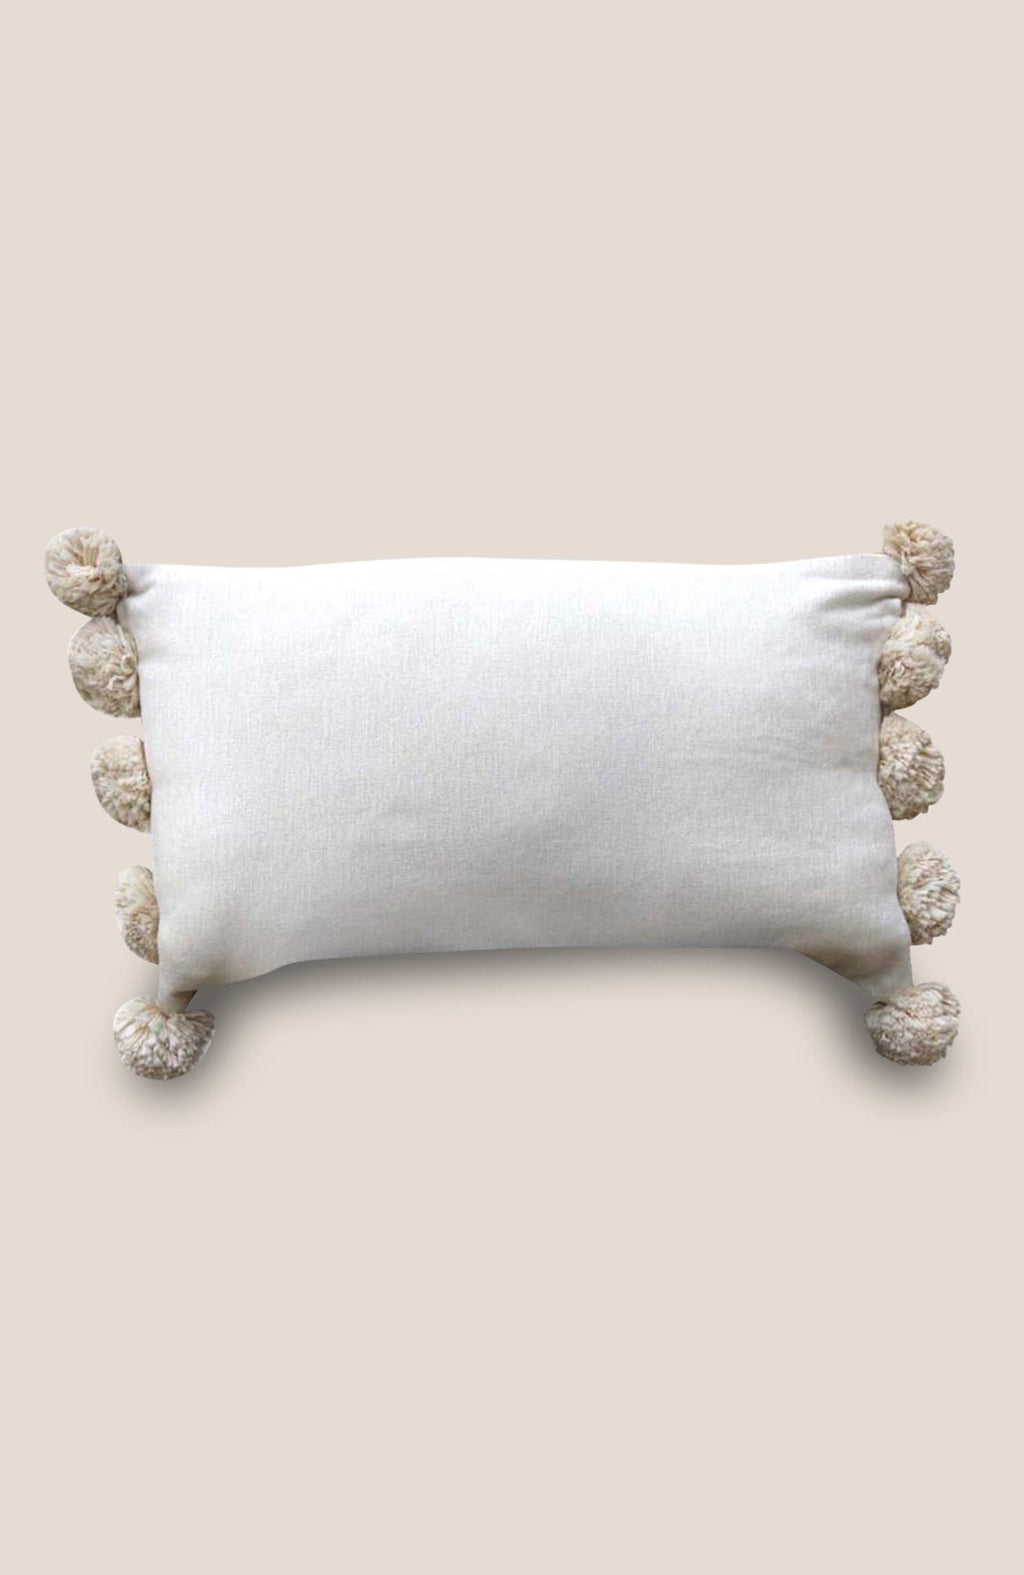 Pompon Pillow Cover Sage - Home Decor | Shop Baskets, Ceramics, Pillows, Rugs & Wall Hangs online